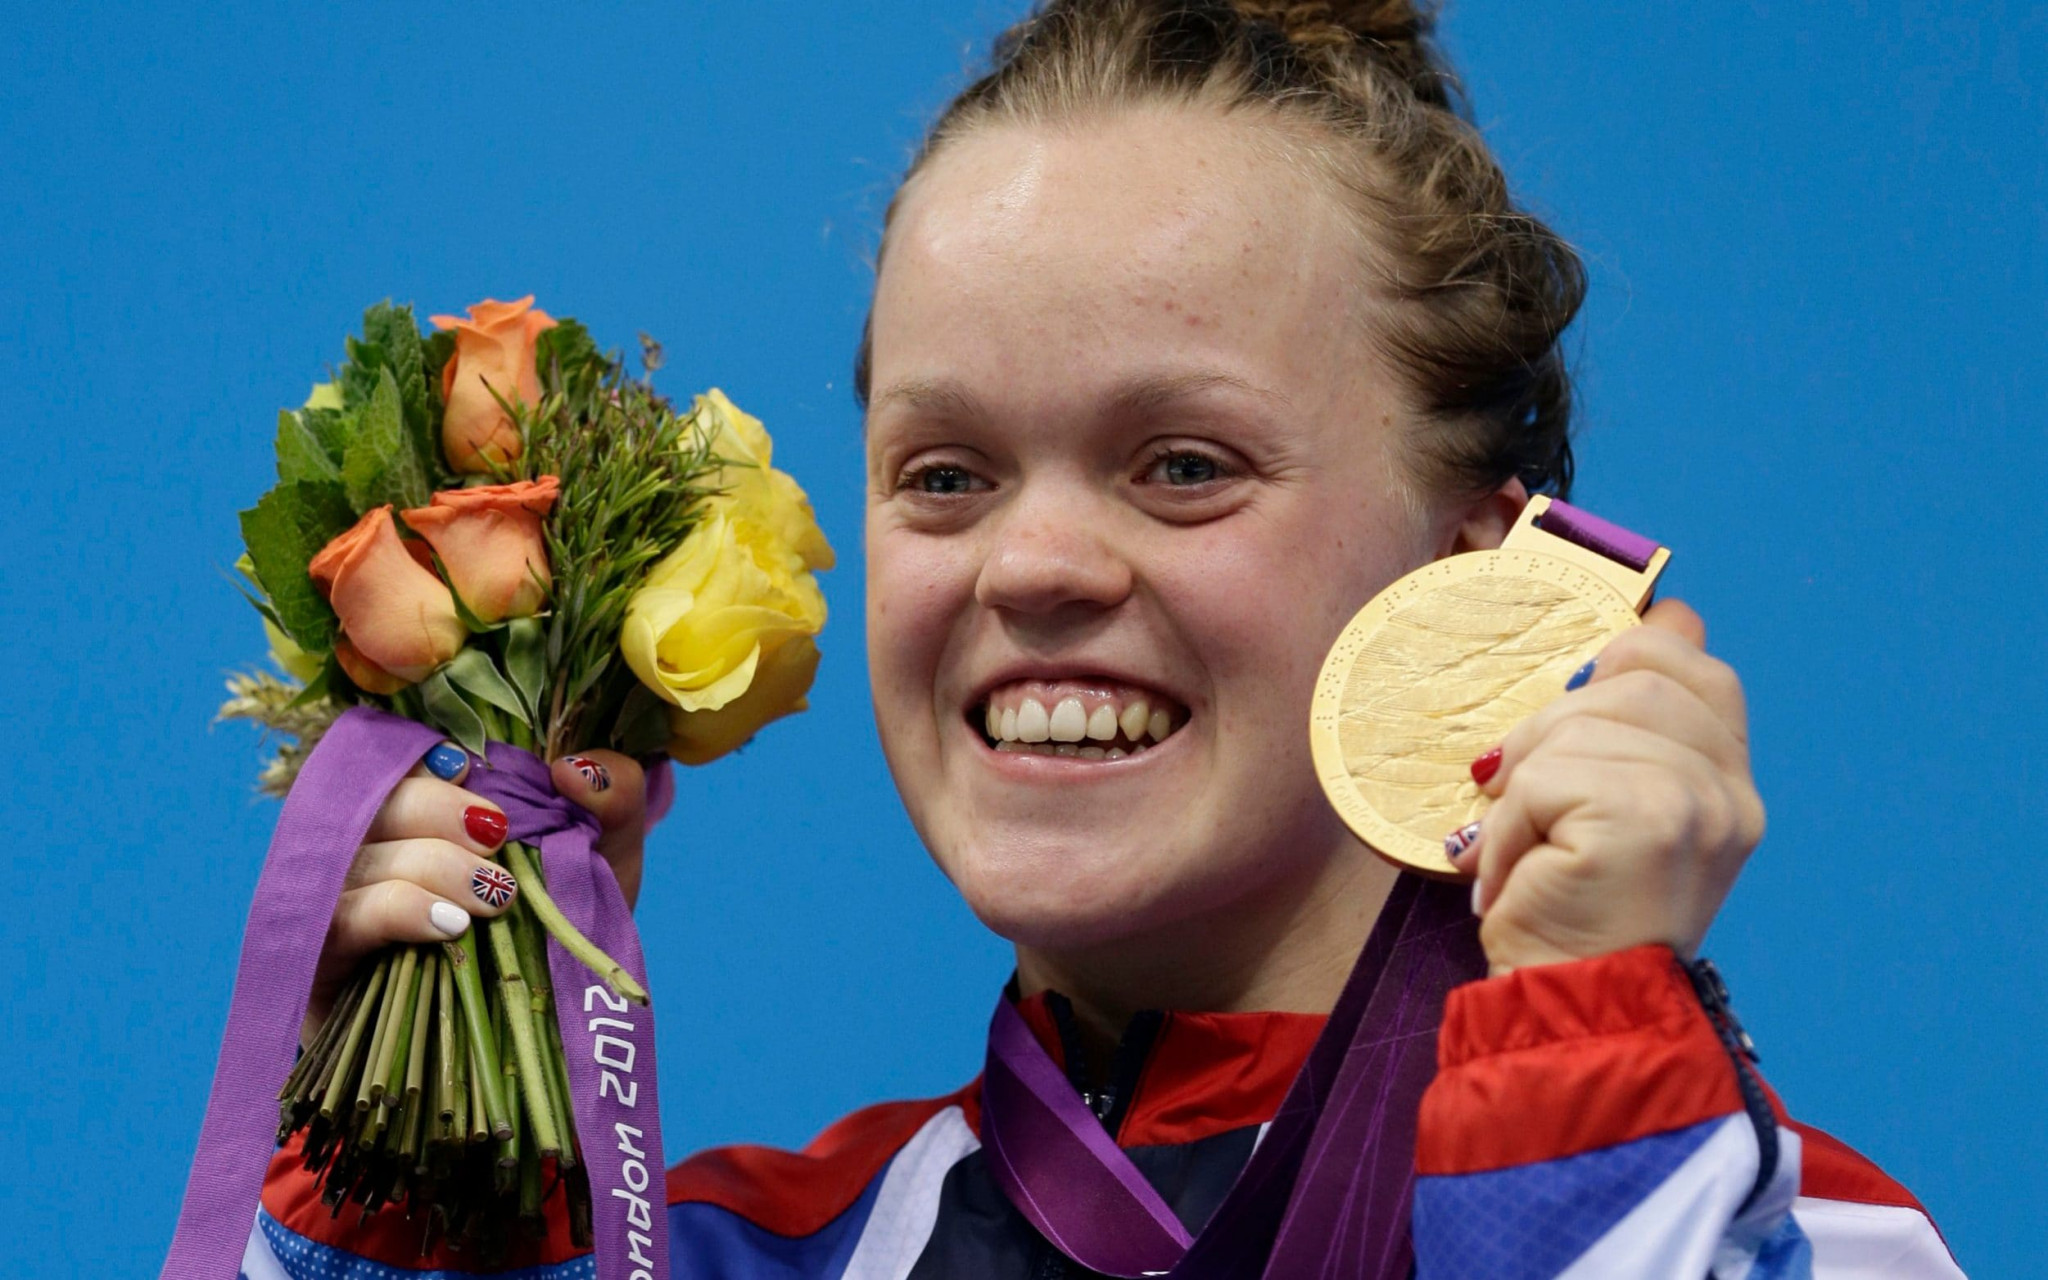 Ellie Simmonds is one of those on the Birmingham 2022 Board of Directors ©Getty Images